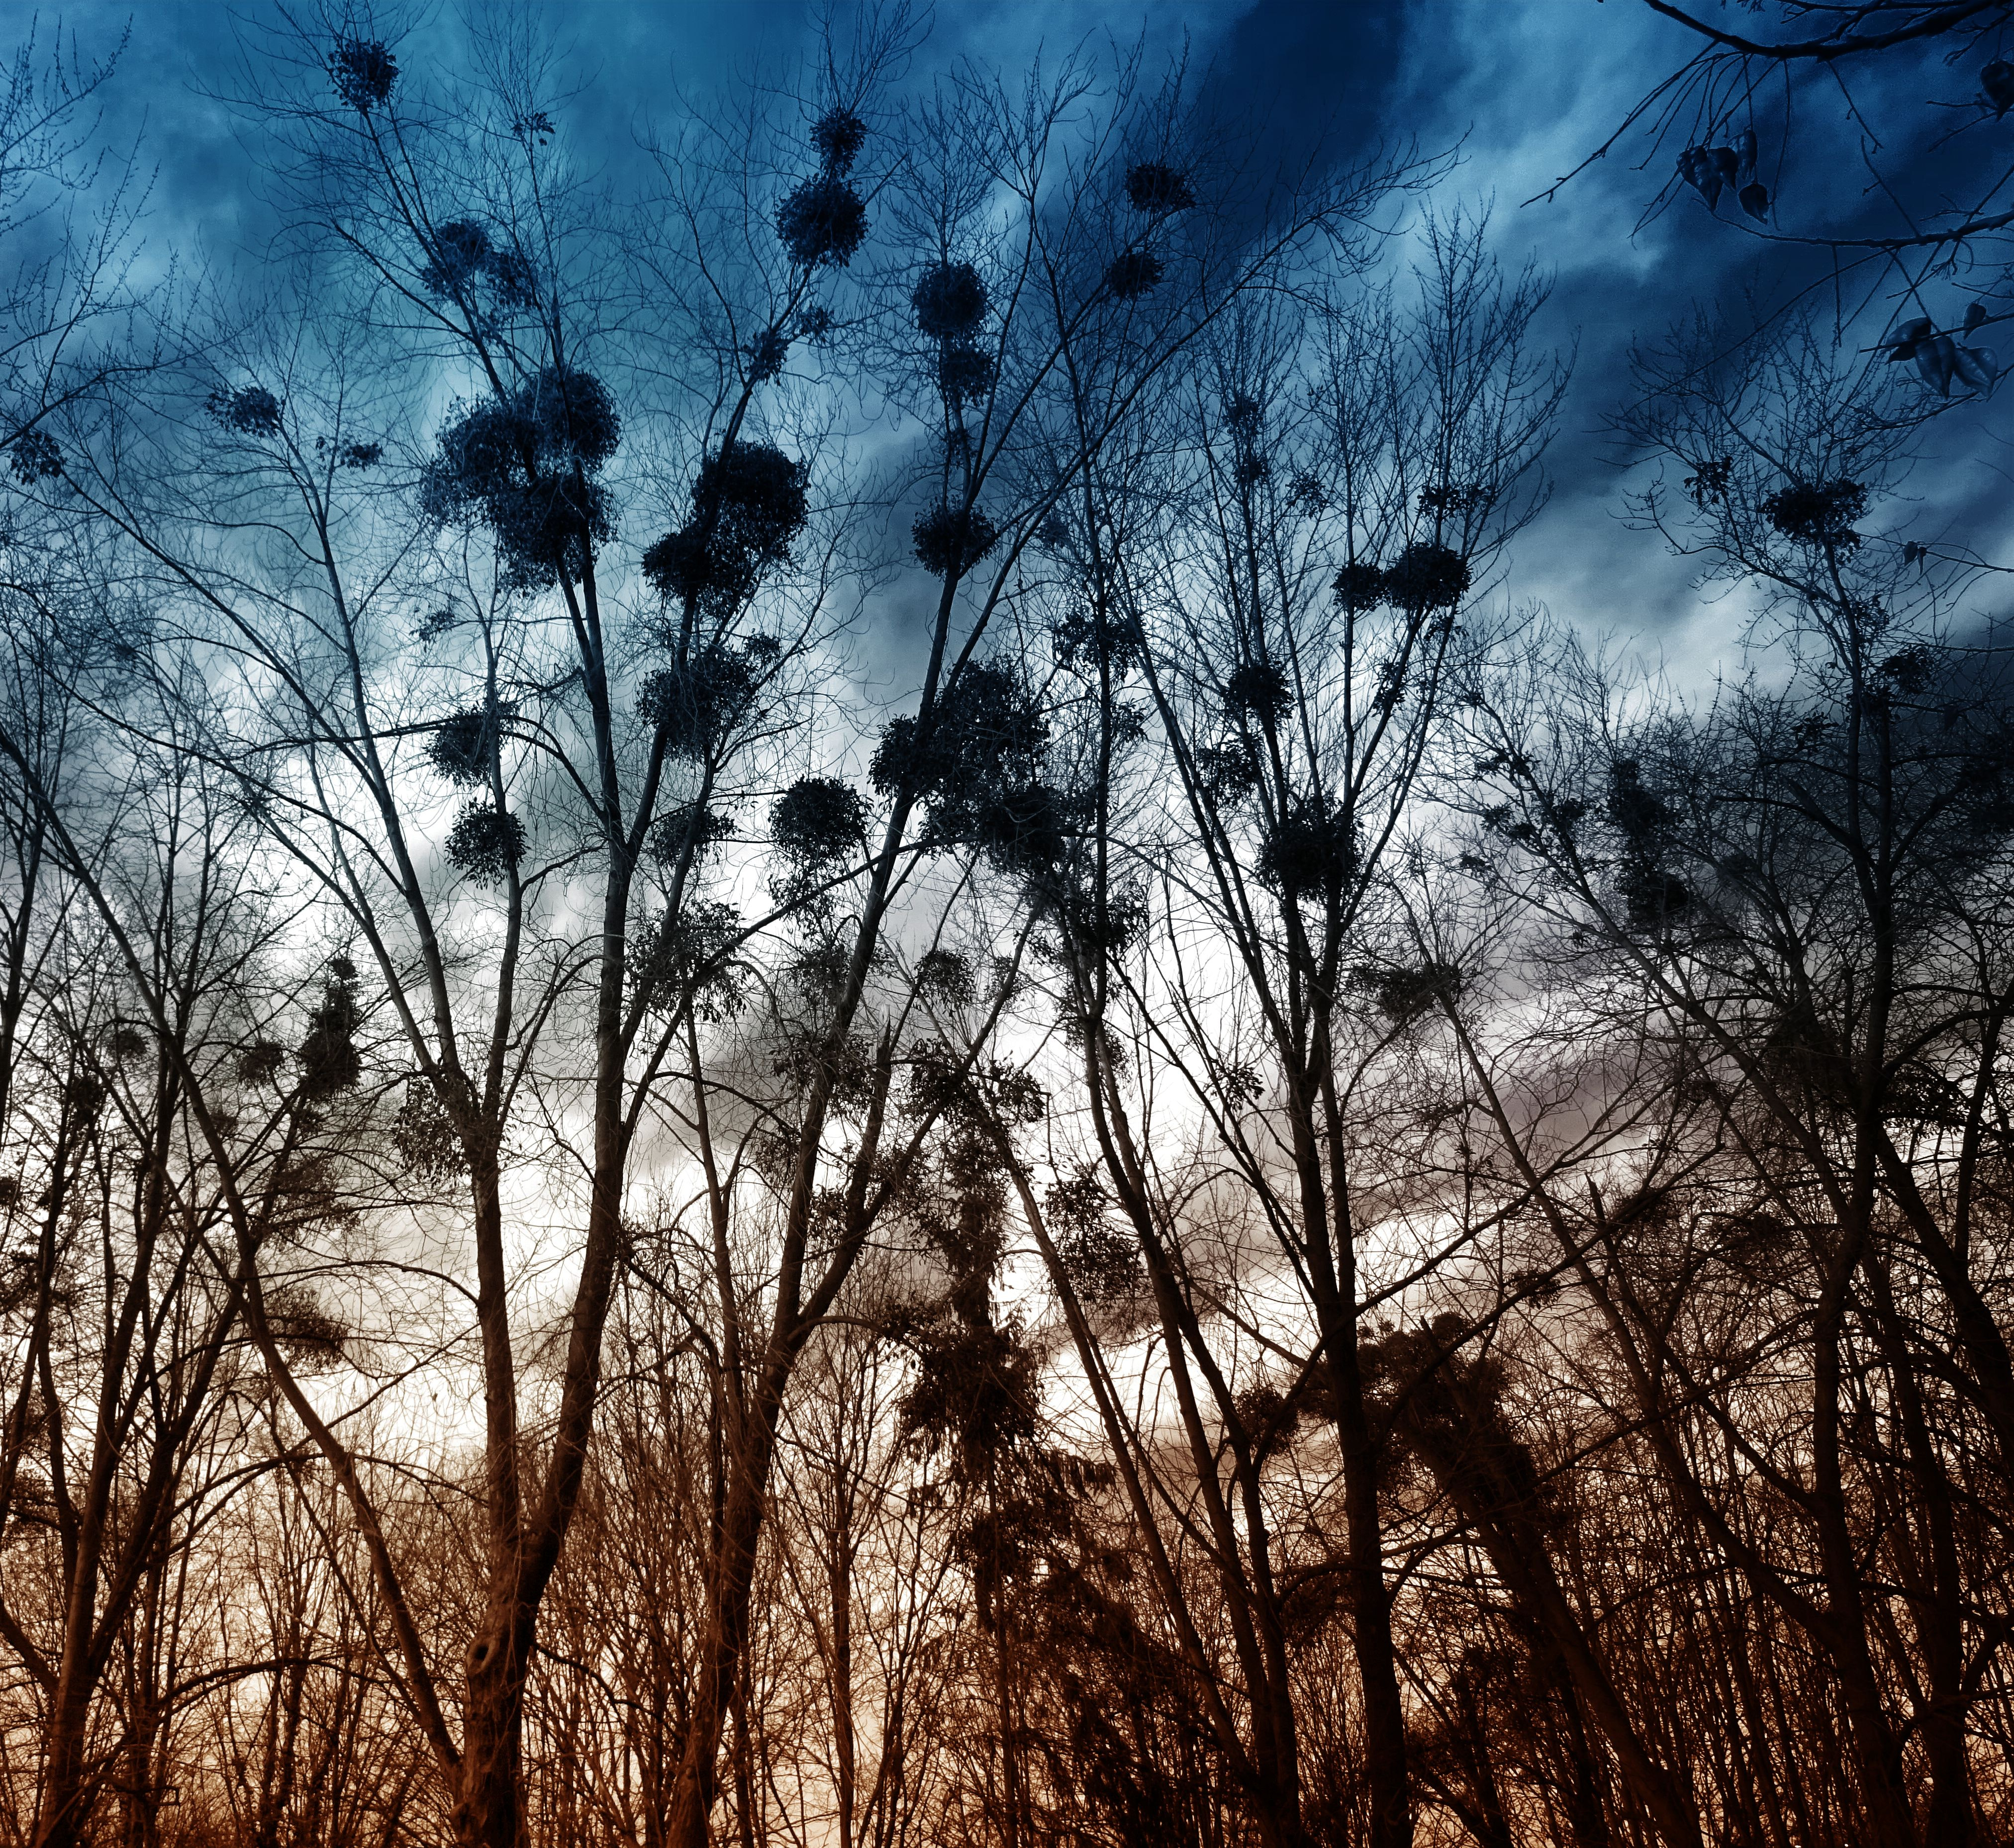 Silhouette of Trees Without Leaves, Branches, Clouds, Colors, Countryside, HQ Photo